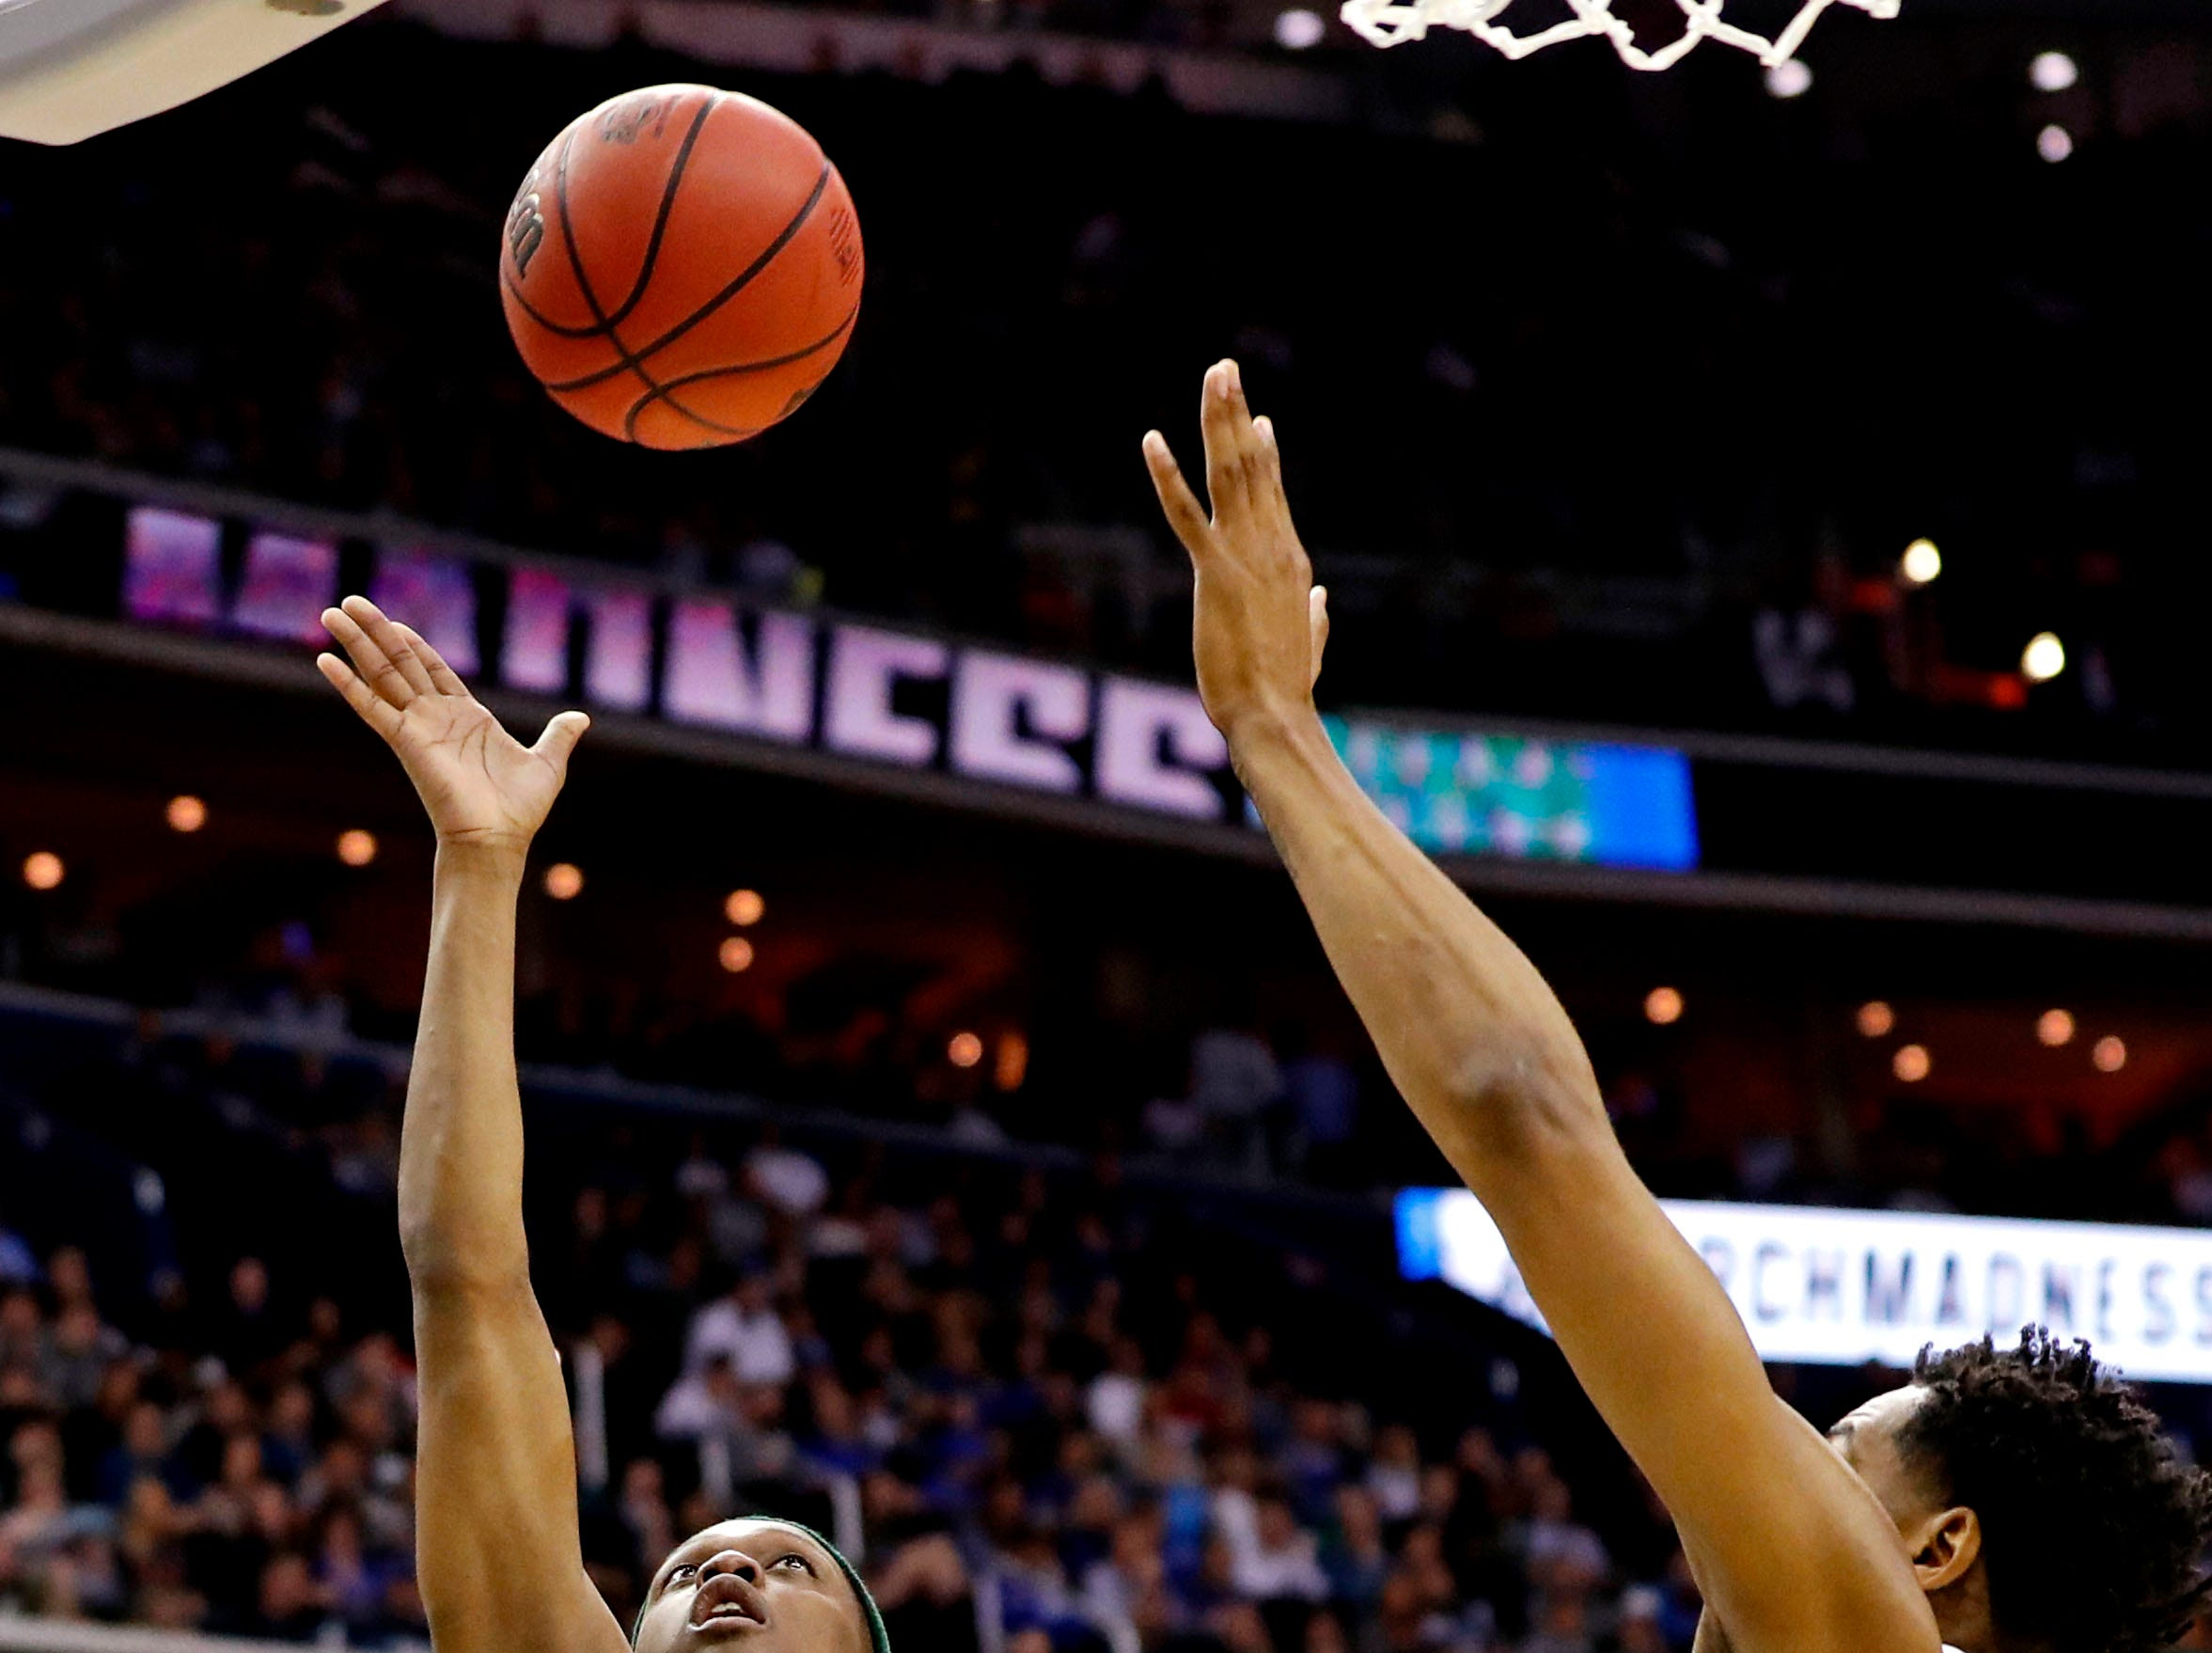 Mar 31, 2019; Washington, DC, USA; Michigan State Spartans guard Cassius Winston (5) shoots the ball against Duke Blue Devils center Marques Bolden (20) during the second half in the championship game of the east regional of the 2019 NCAA Tournament at Capital One Arena. Mandatory Credit: Geoff Burke-USA TODAY Sports